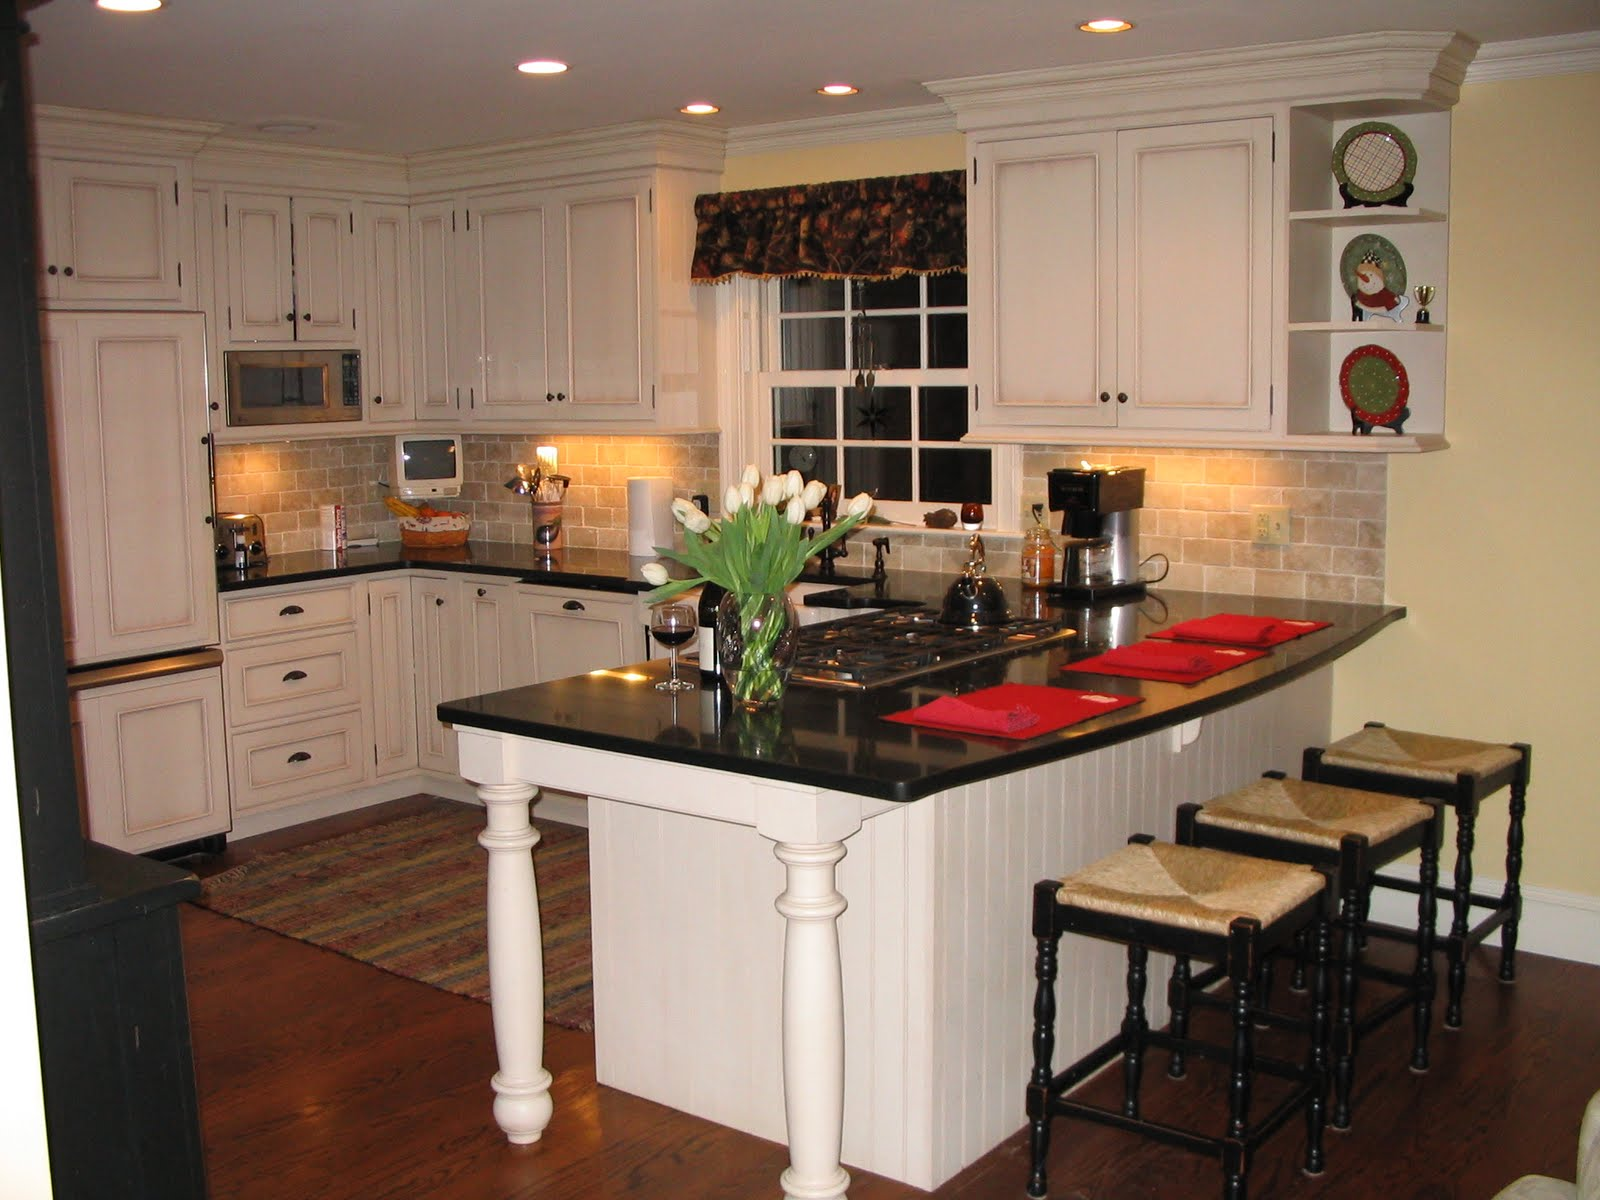 cabinets cabinet kristens glazing kitchen creations painted in refinishing glazed